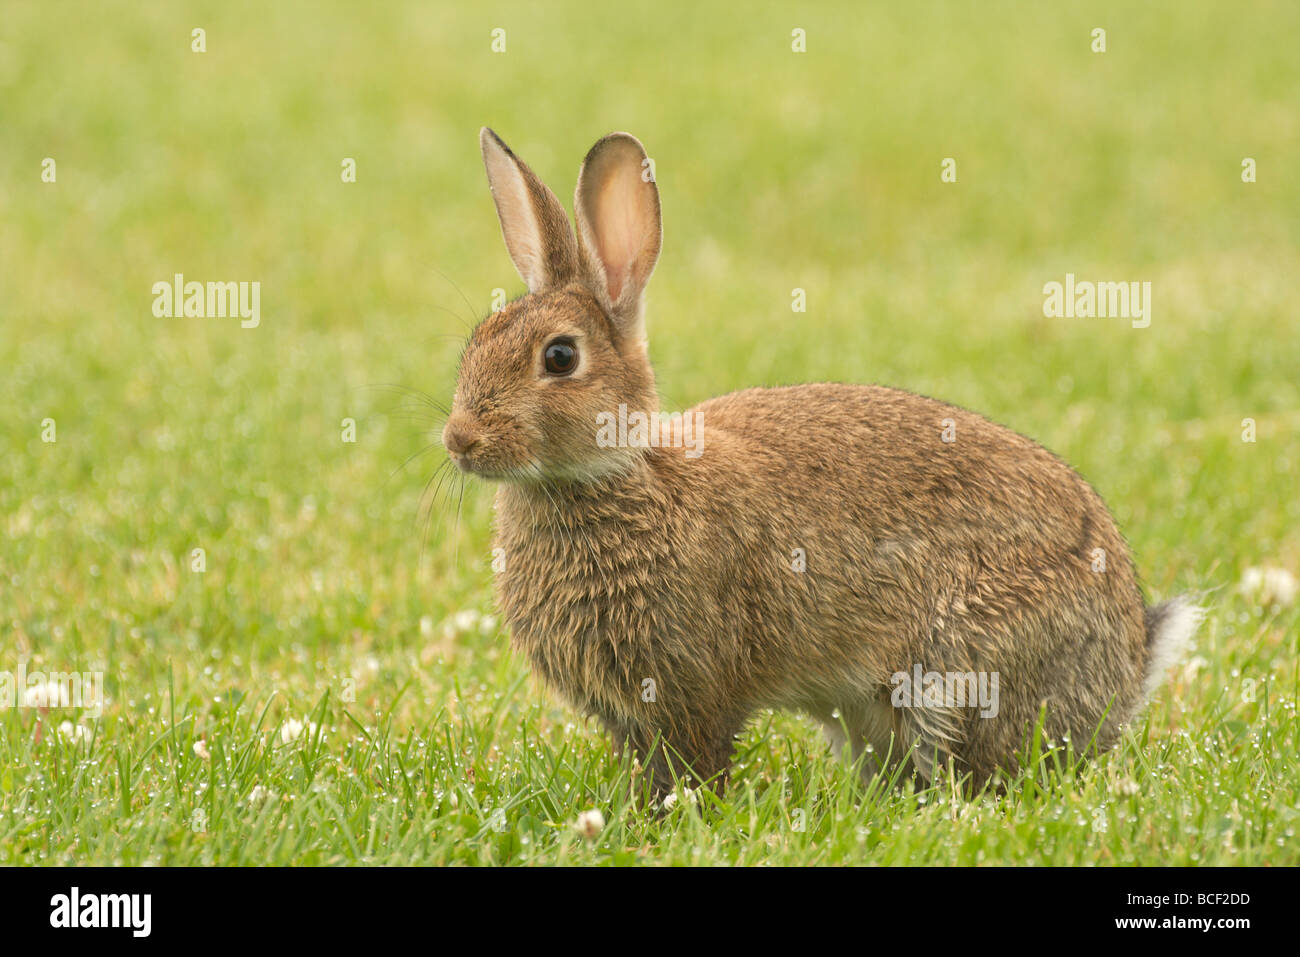 Rabbit High Resolution Stock Photography And Images Alamy